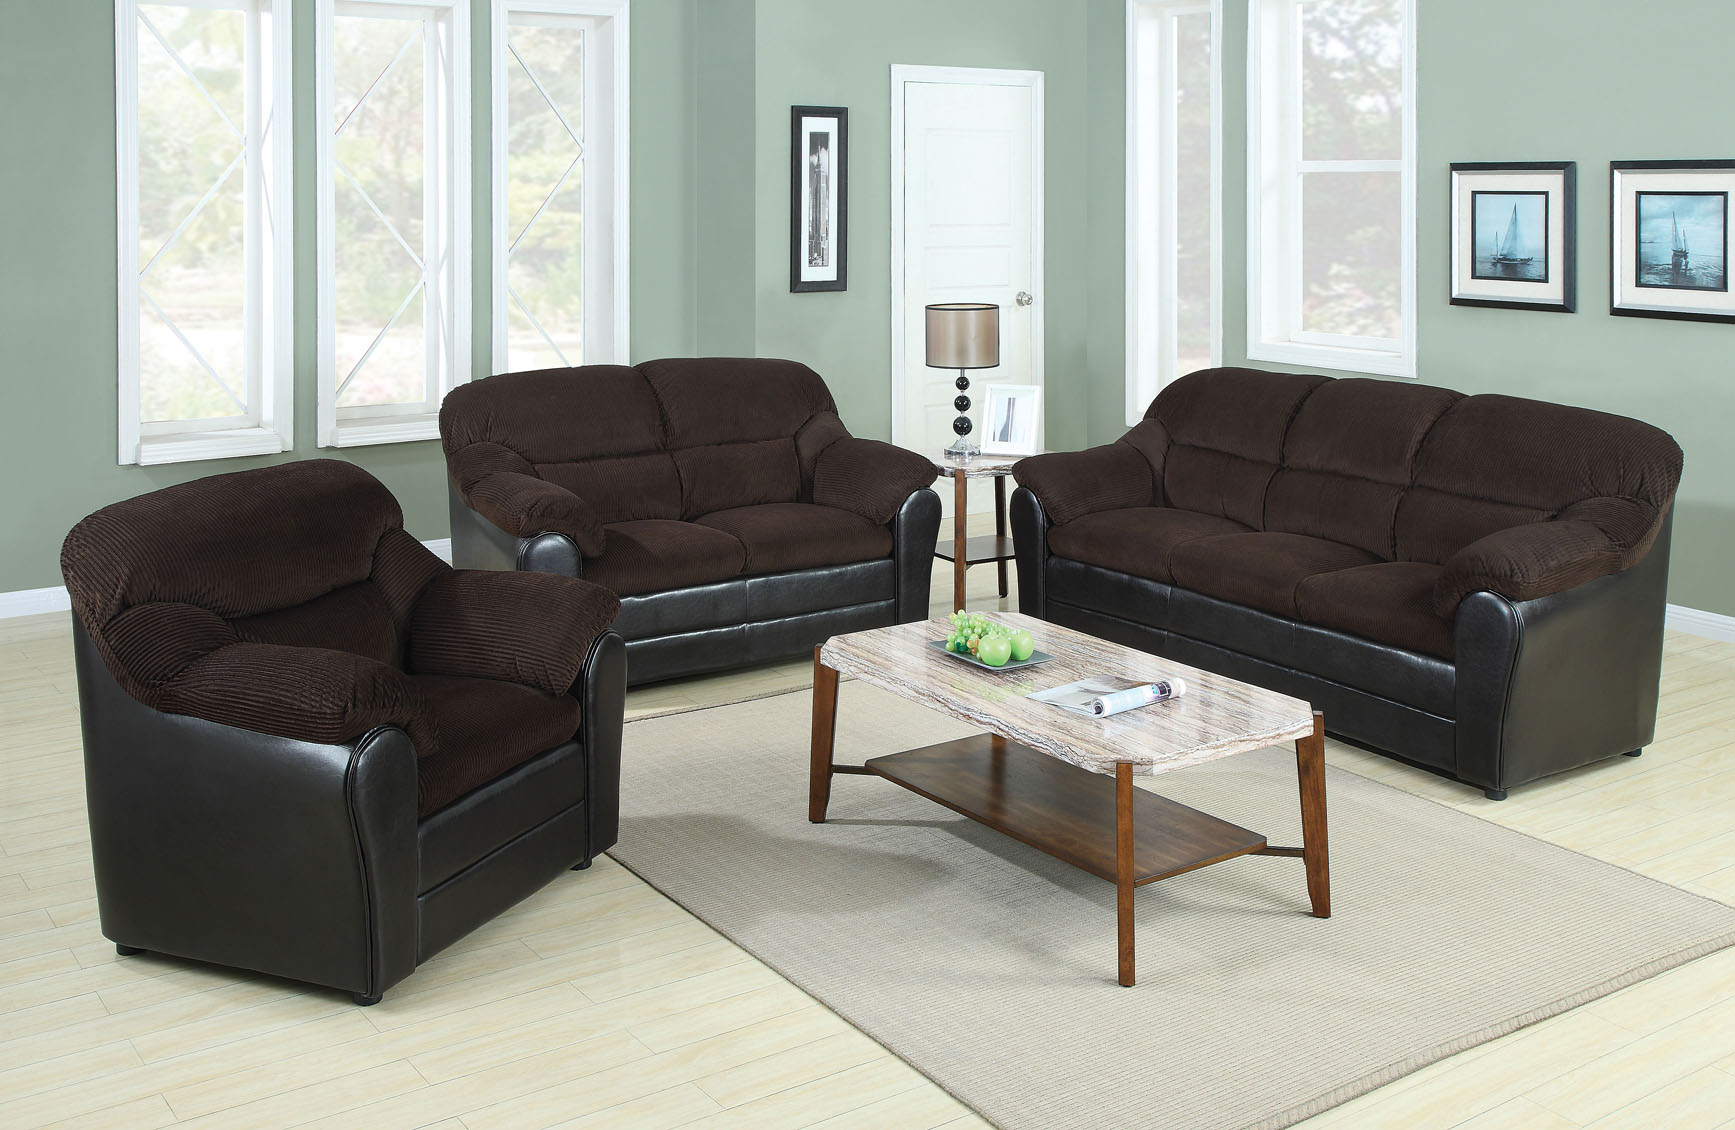 Best Connell Sofa Acme Furniture Home Gallery Stores 400 x 300